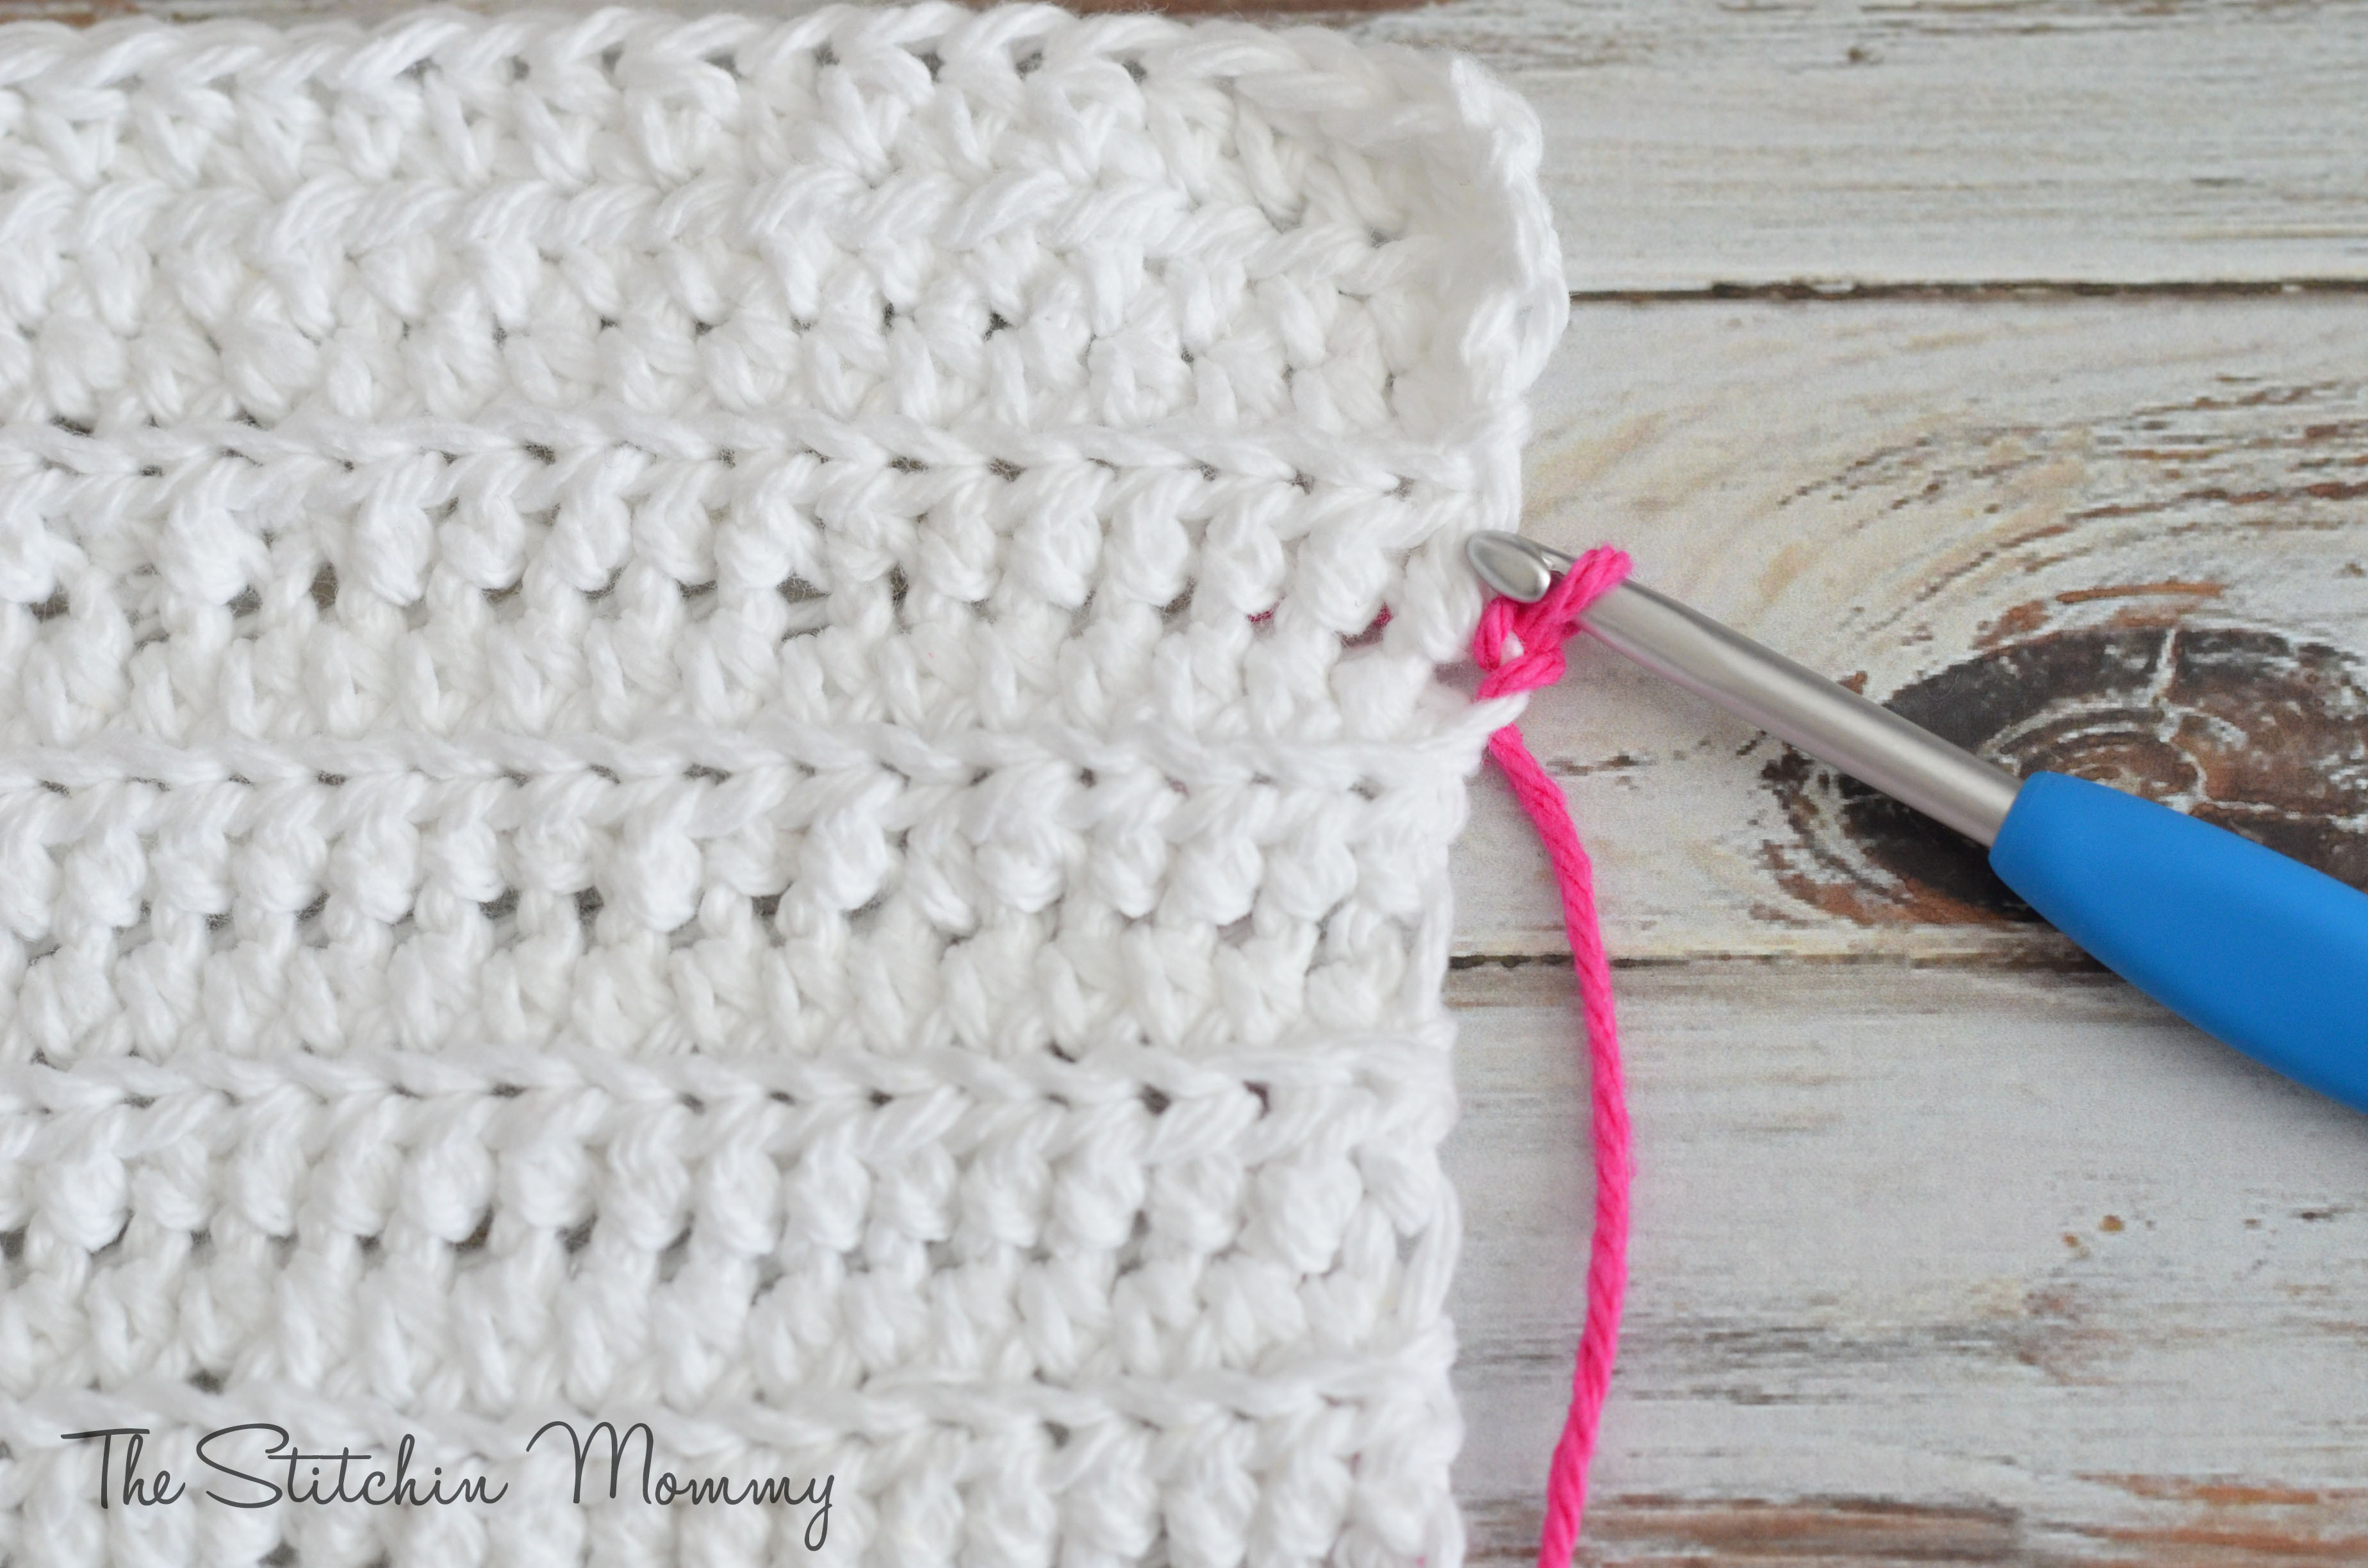 Crochet Striped Dishcloths - The Stitchin Mommy